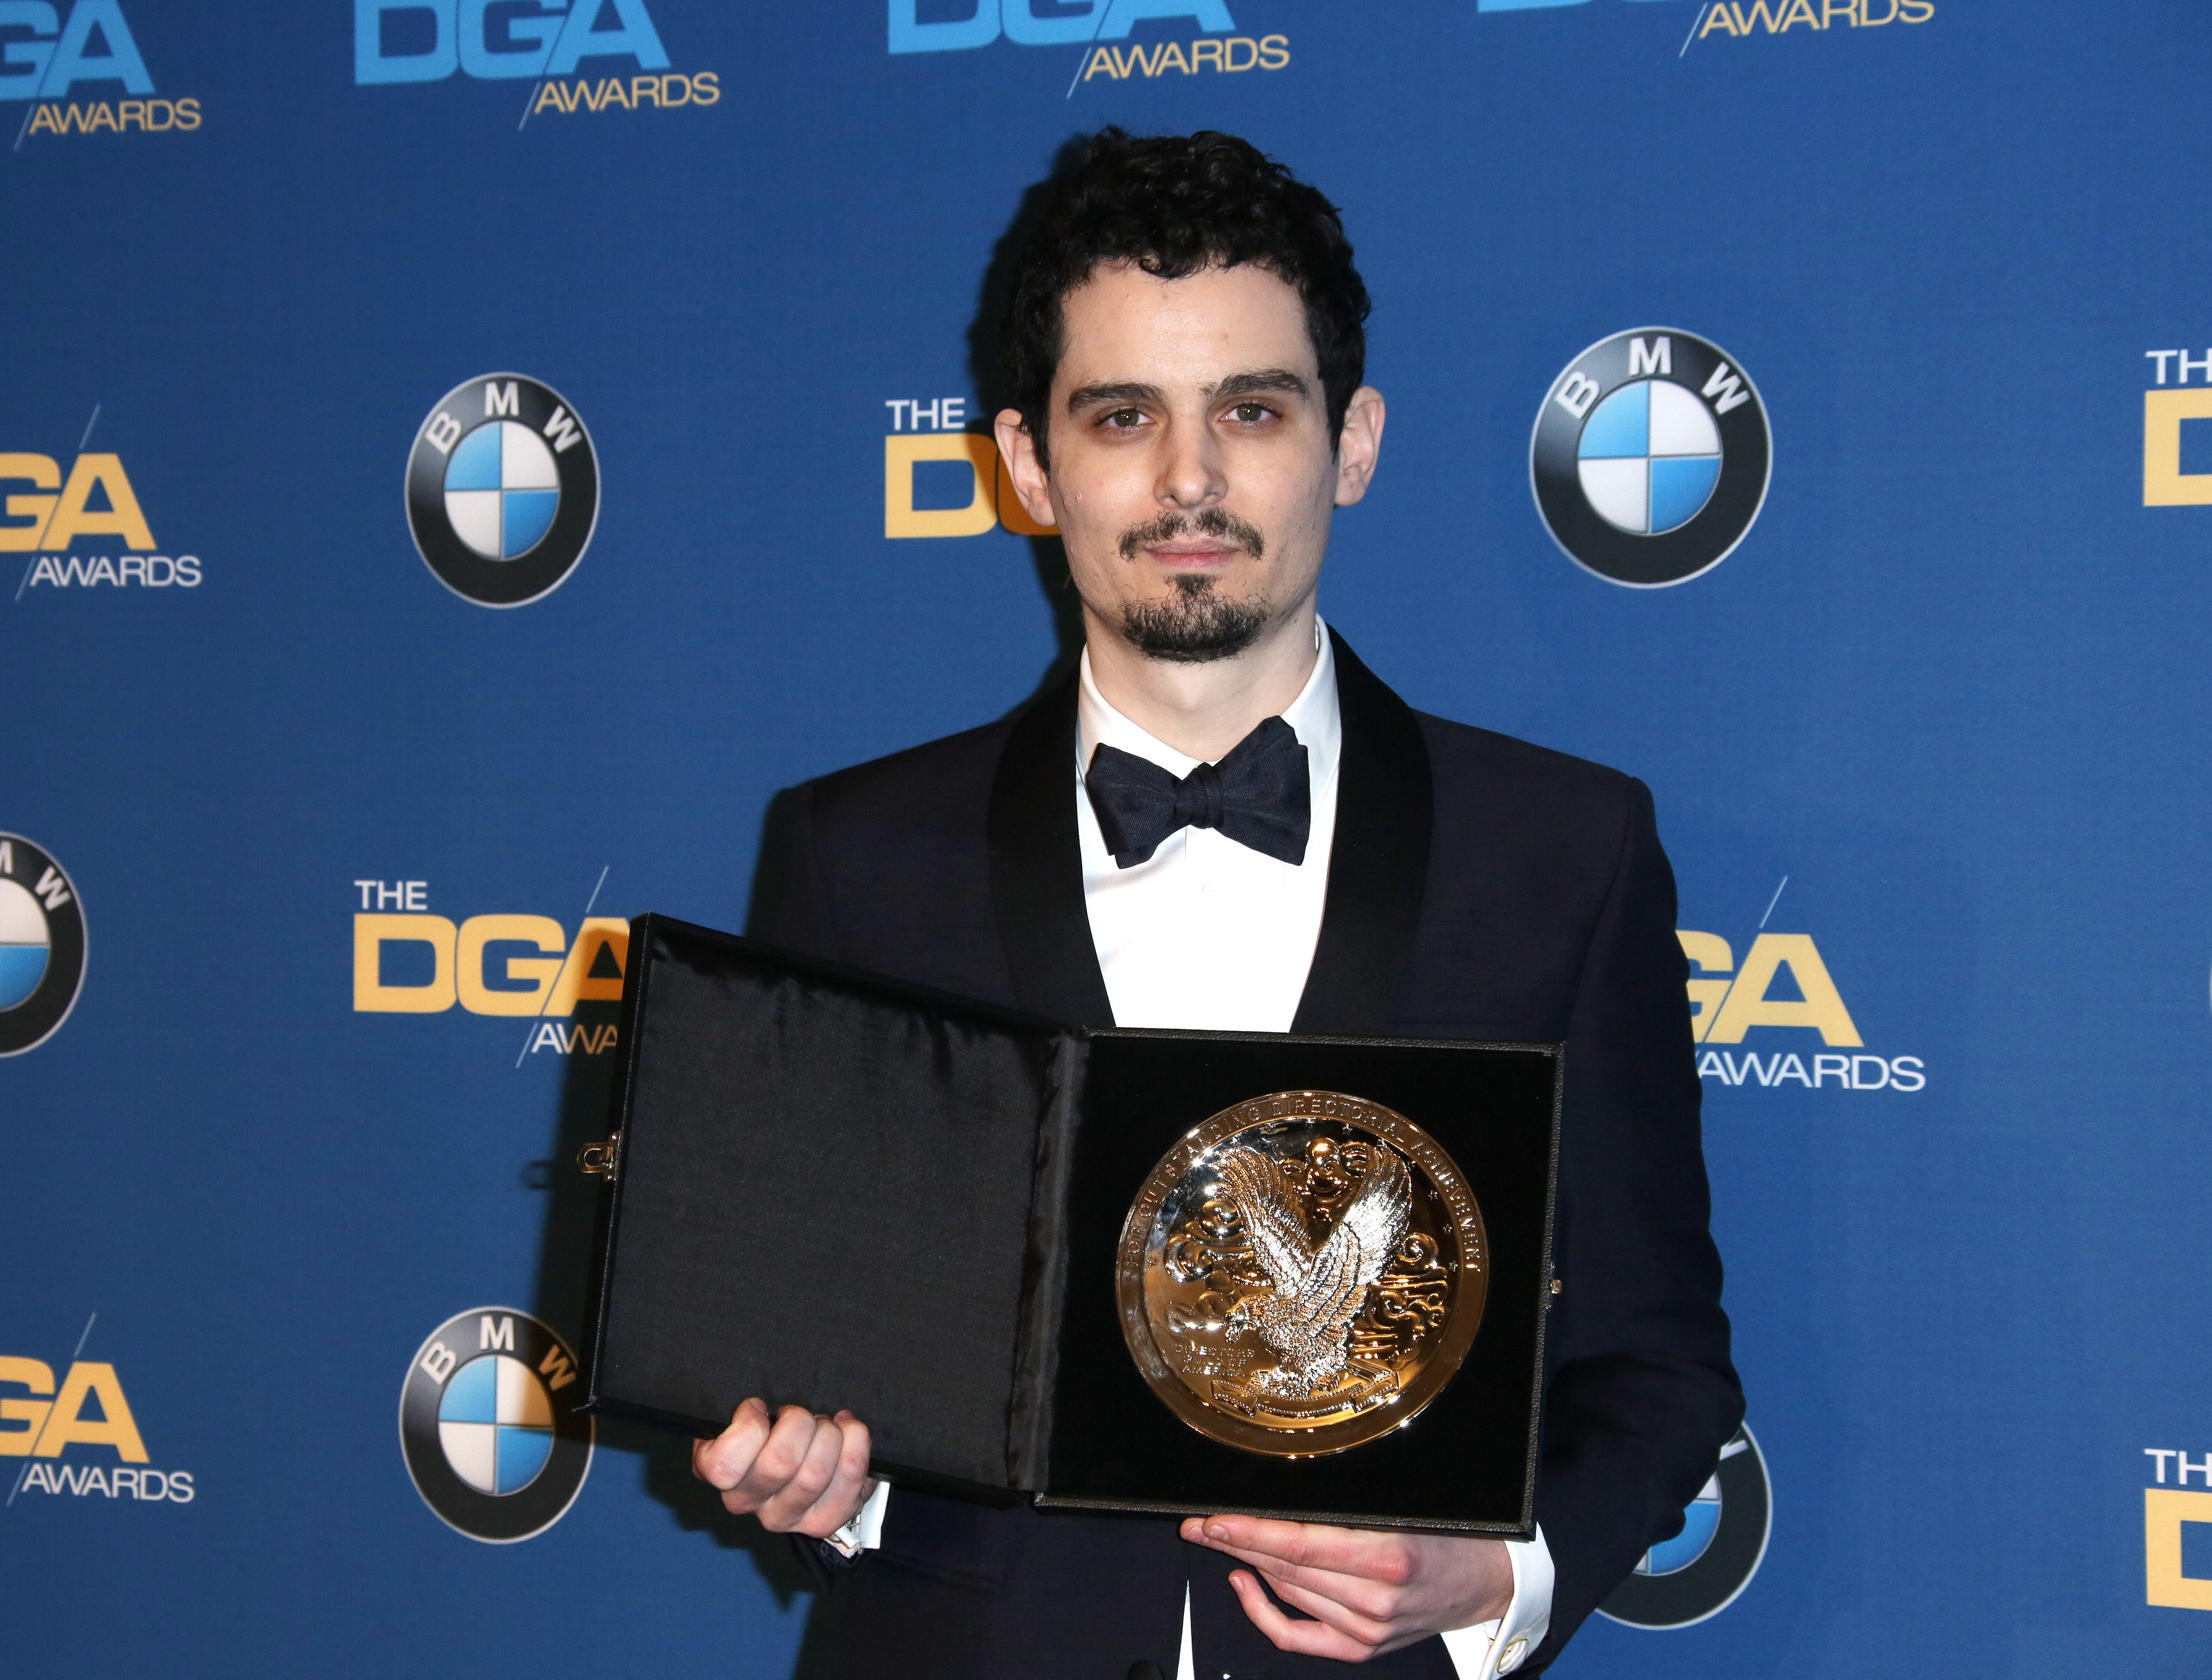 The 69th Annual Directors Guild Awards, Press Room, Los Angeles, USA - 04 Feb 2017